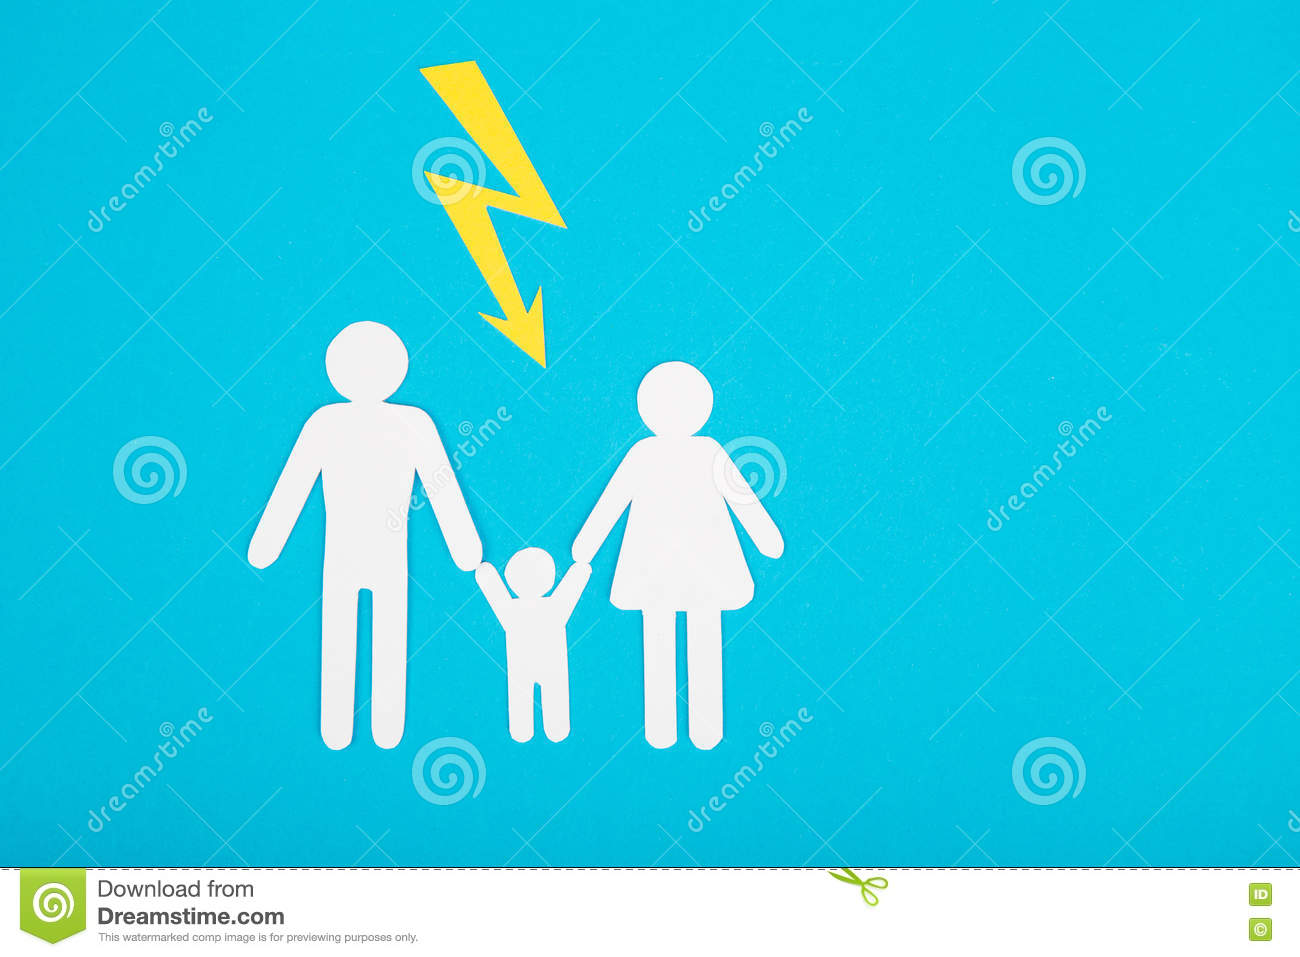 Cardboard Figures Of The Family On A Blue Background The Symbol